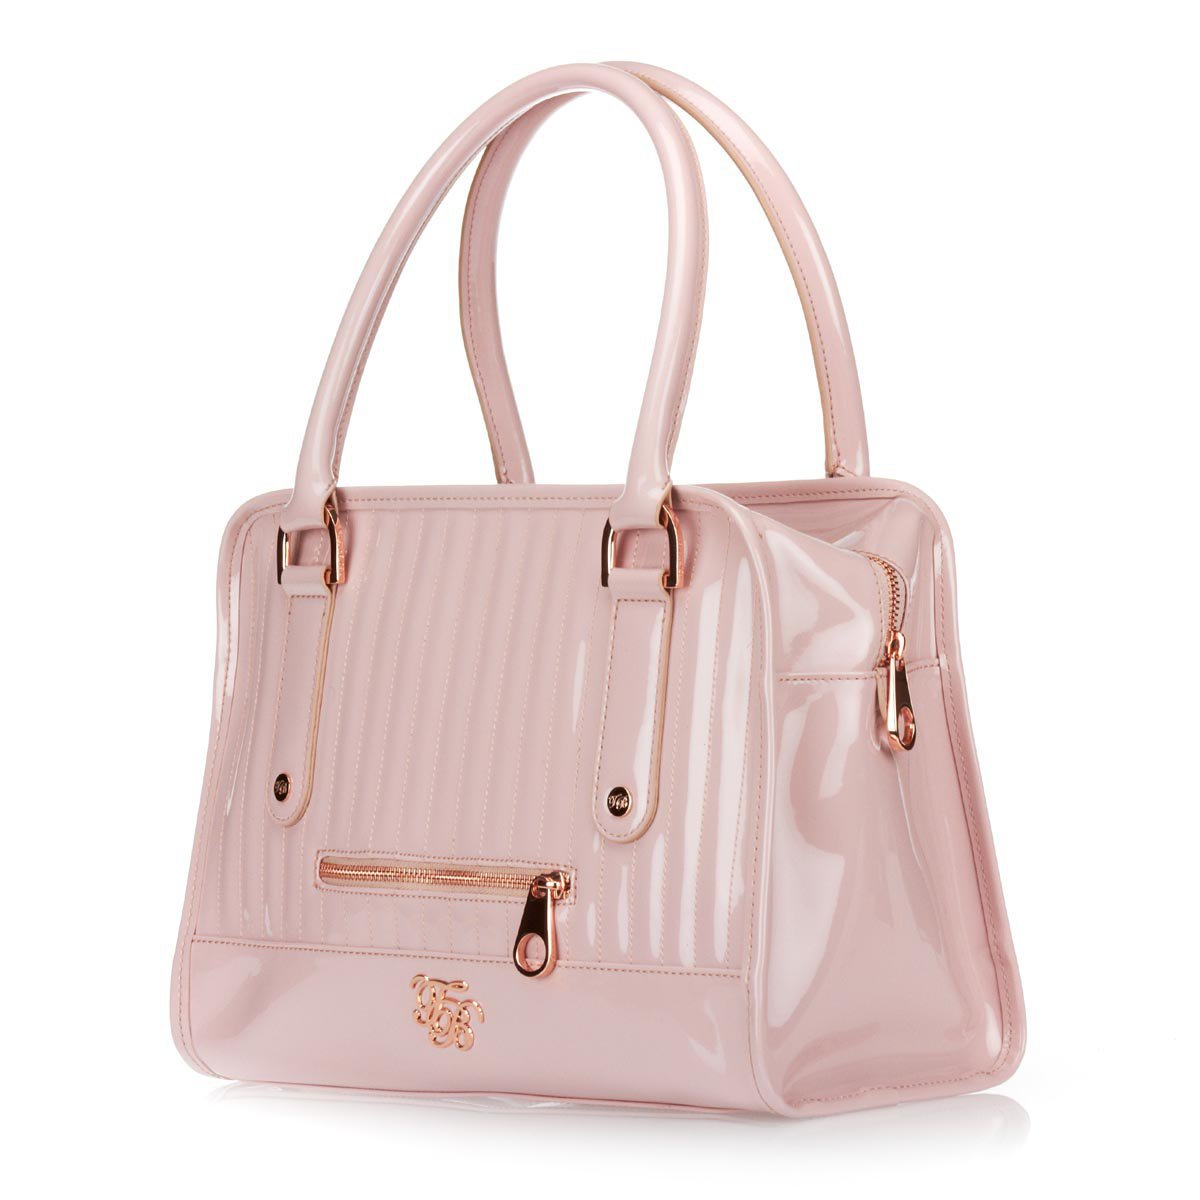 05389cce29a Tory Burch Tote Bag: Ted Baker Handbags Pink